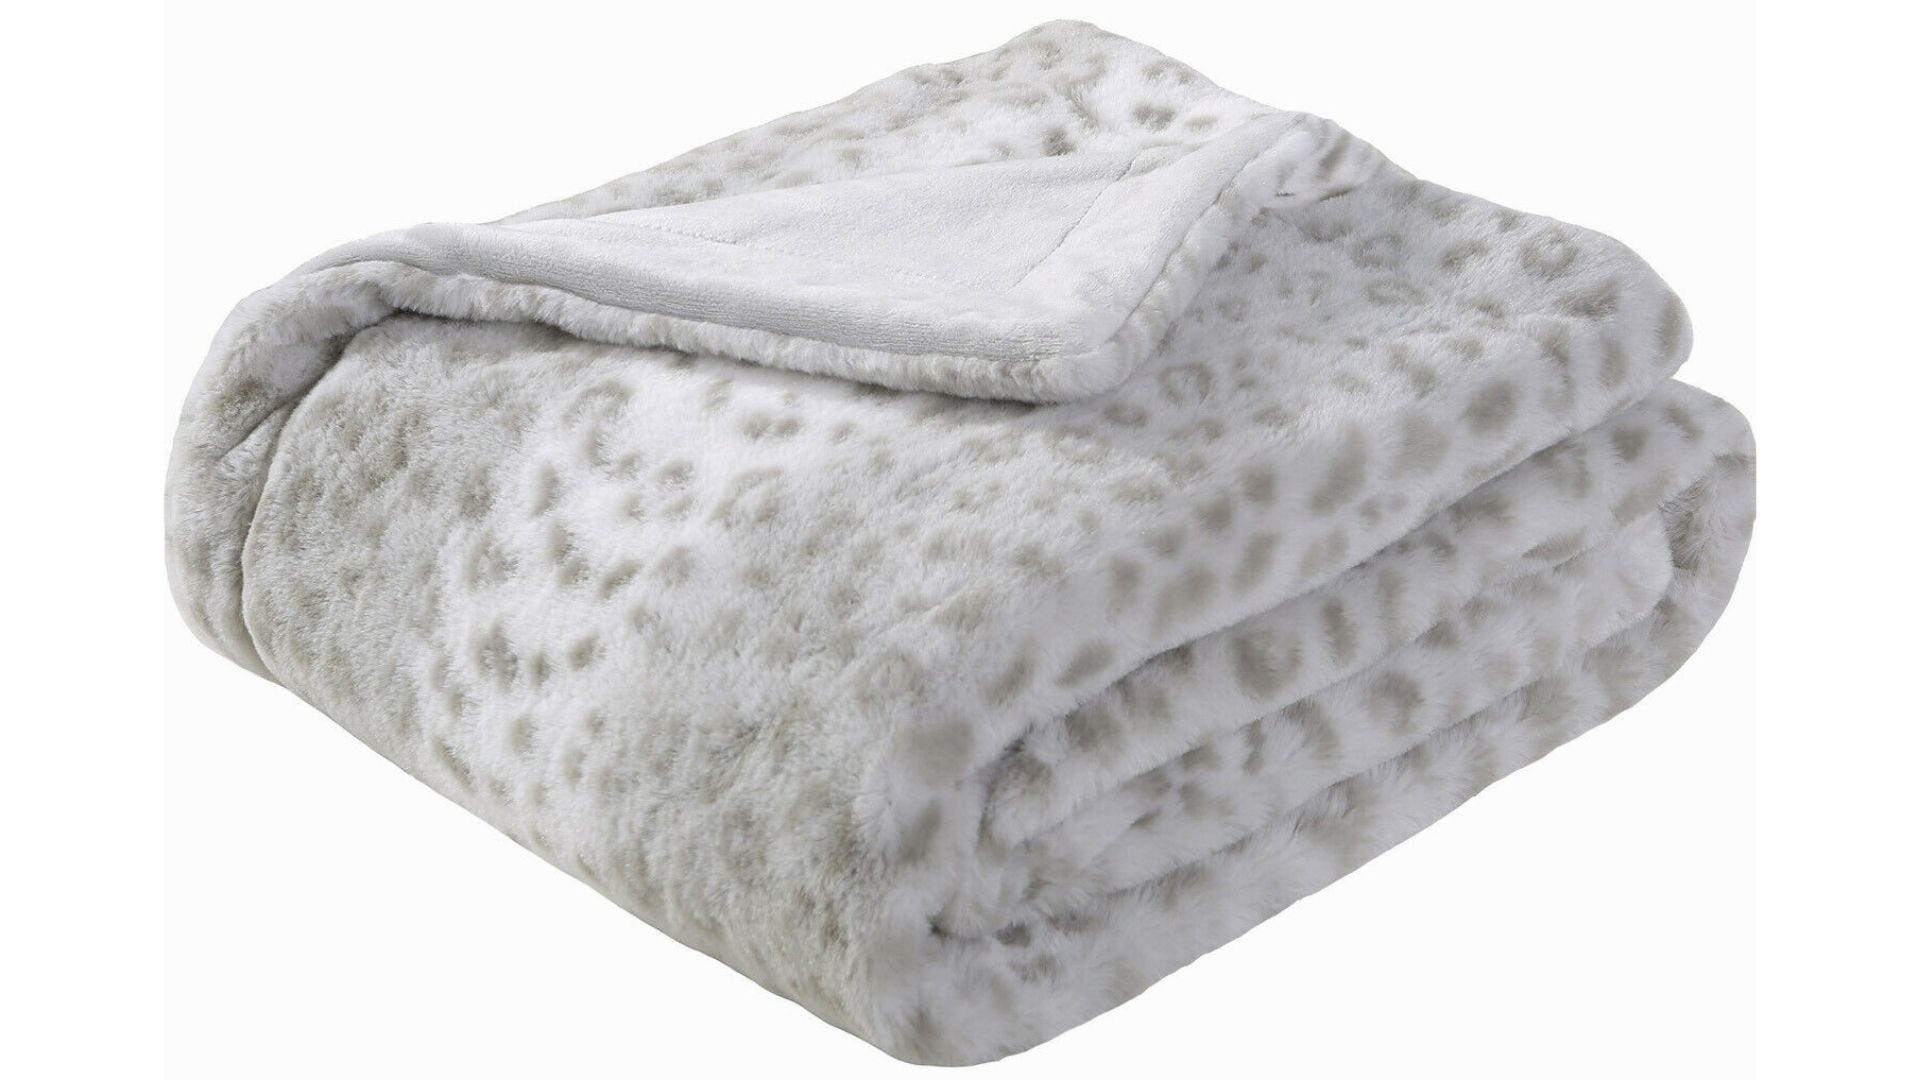 A folded gray leopard print blanket on a white background.